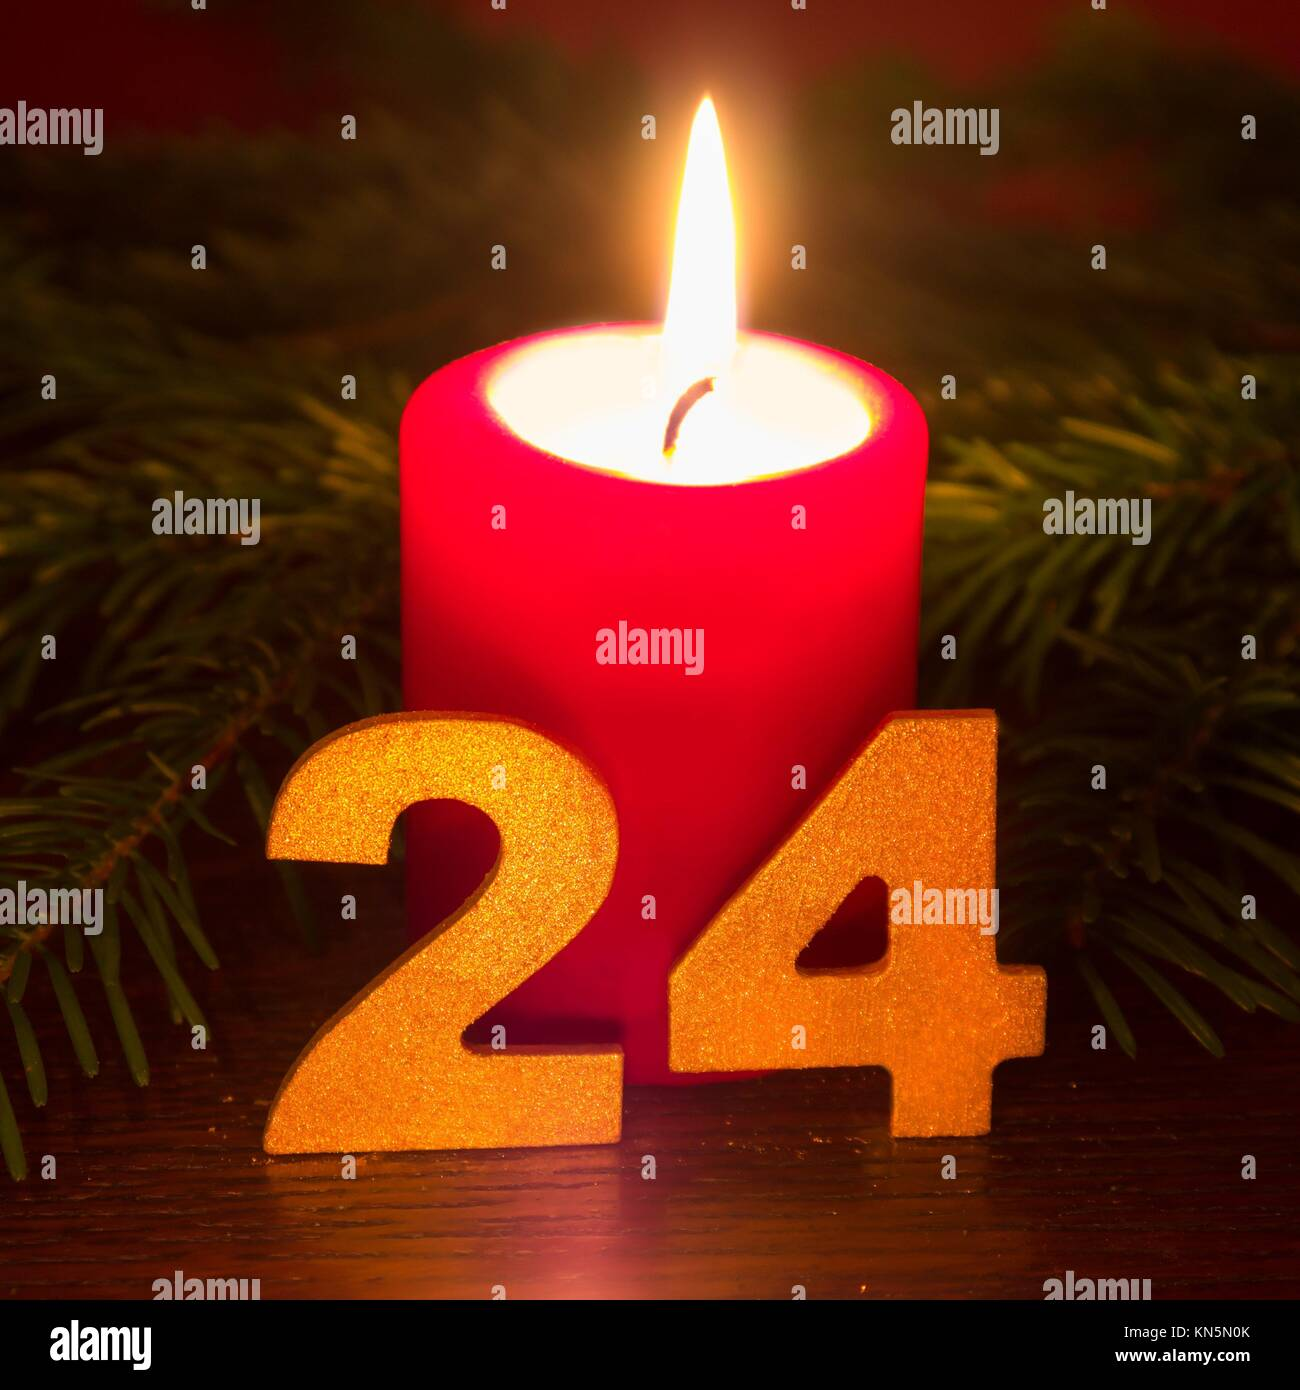 24 december, red candle. - Stock Image